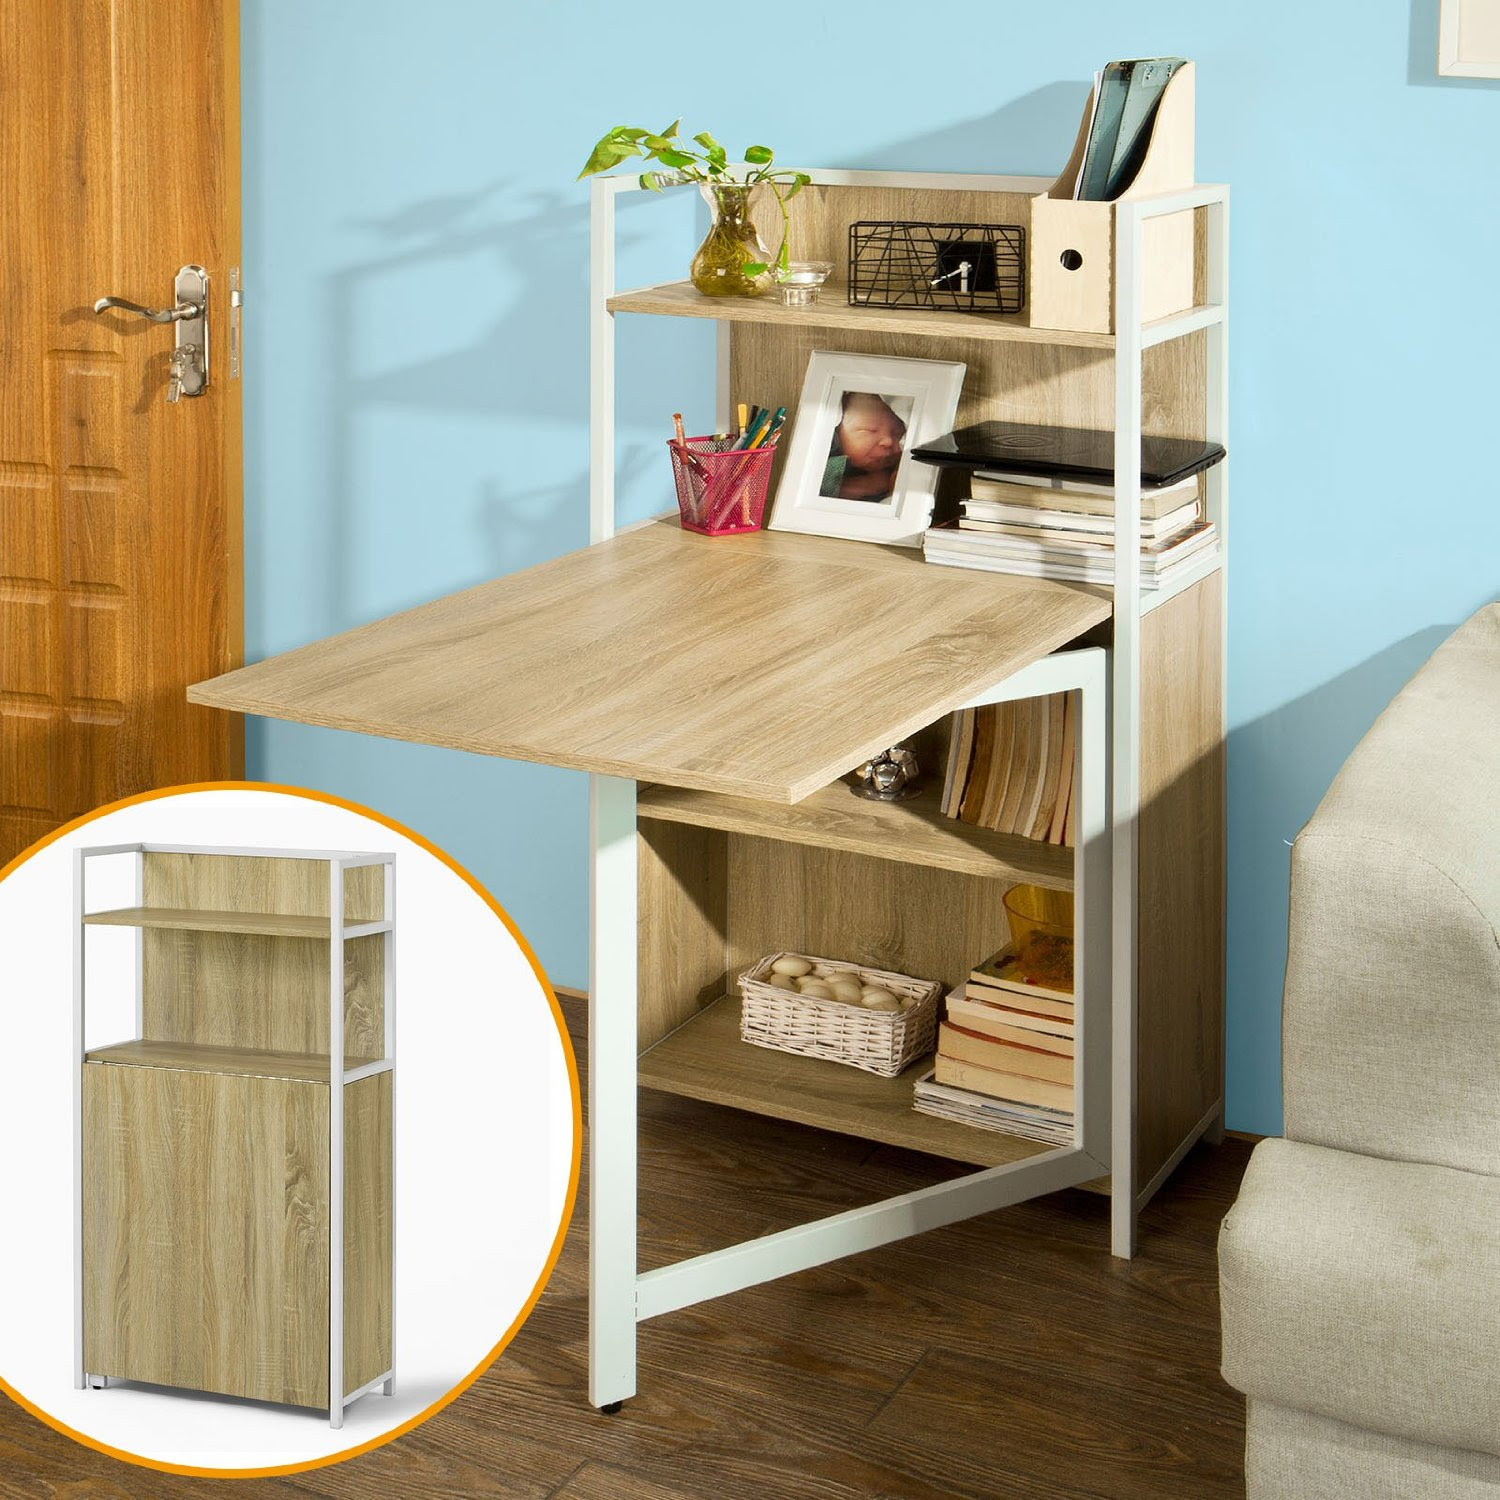 Cuisine Images Idees Et Decoration 11 Idees Table Rabattable